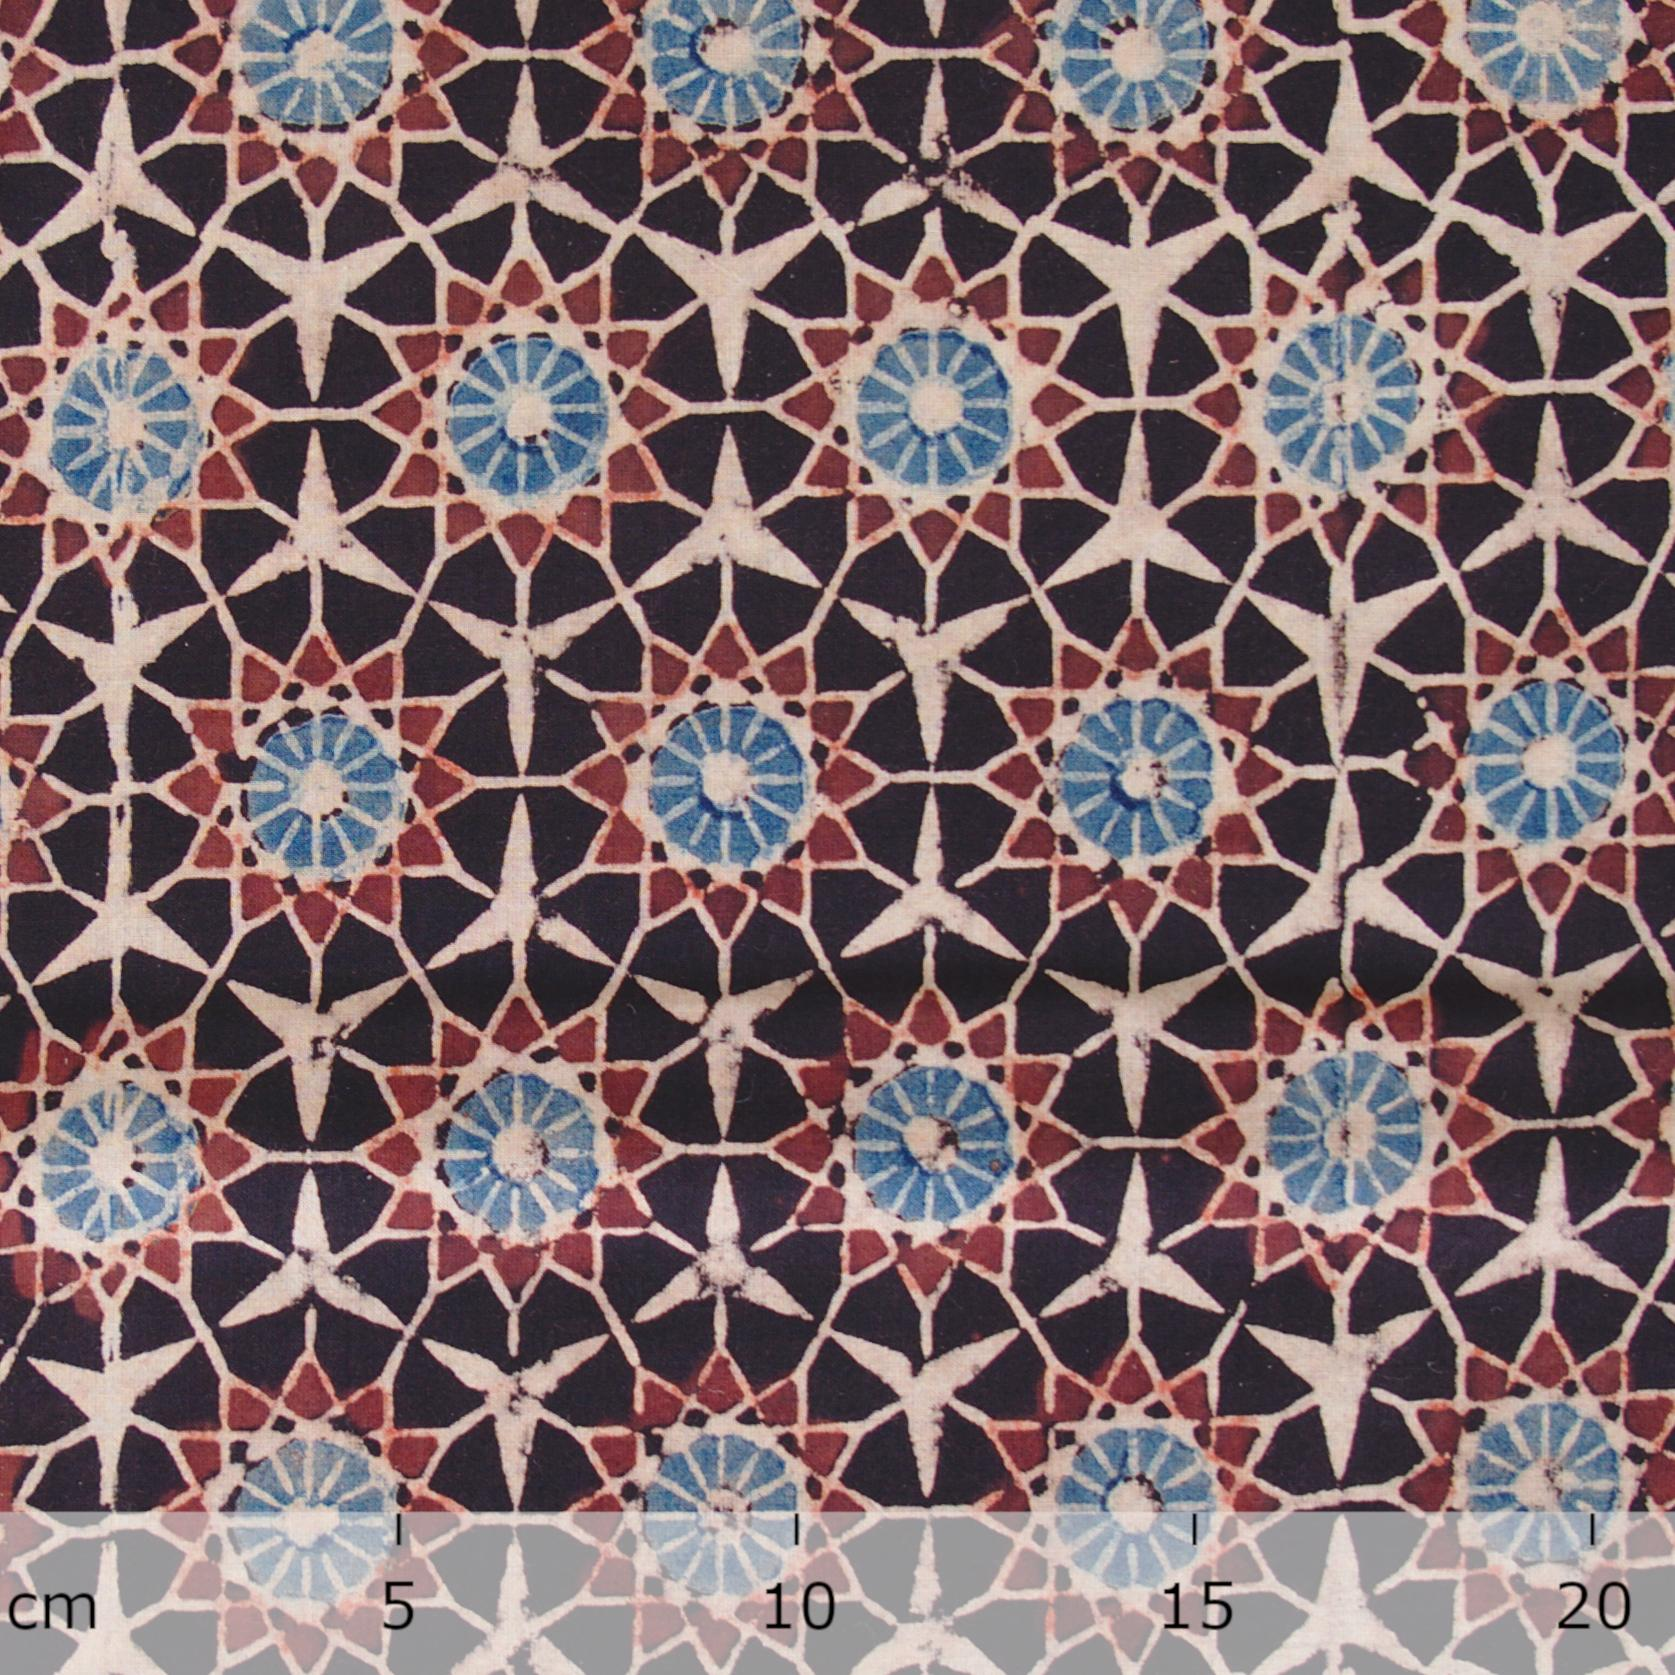 Block Printed Fabric, 100% Cotton, Ajrak Design: Black Base, Madder Root Red, Blue, Cream Burst. Ruler